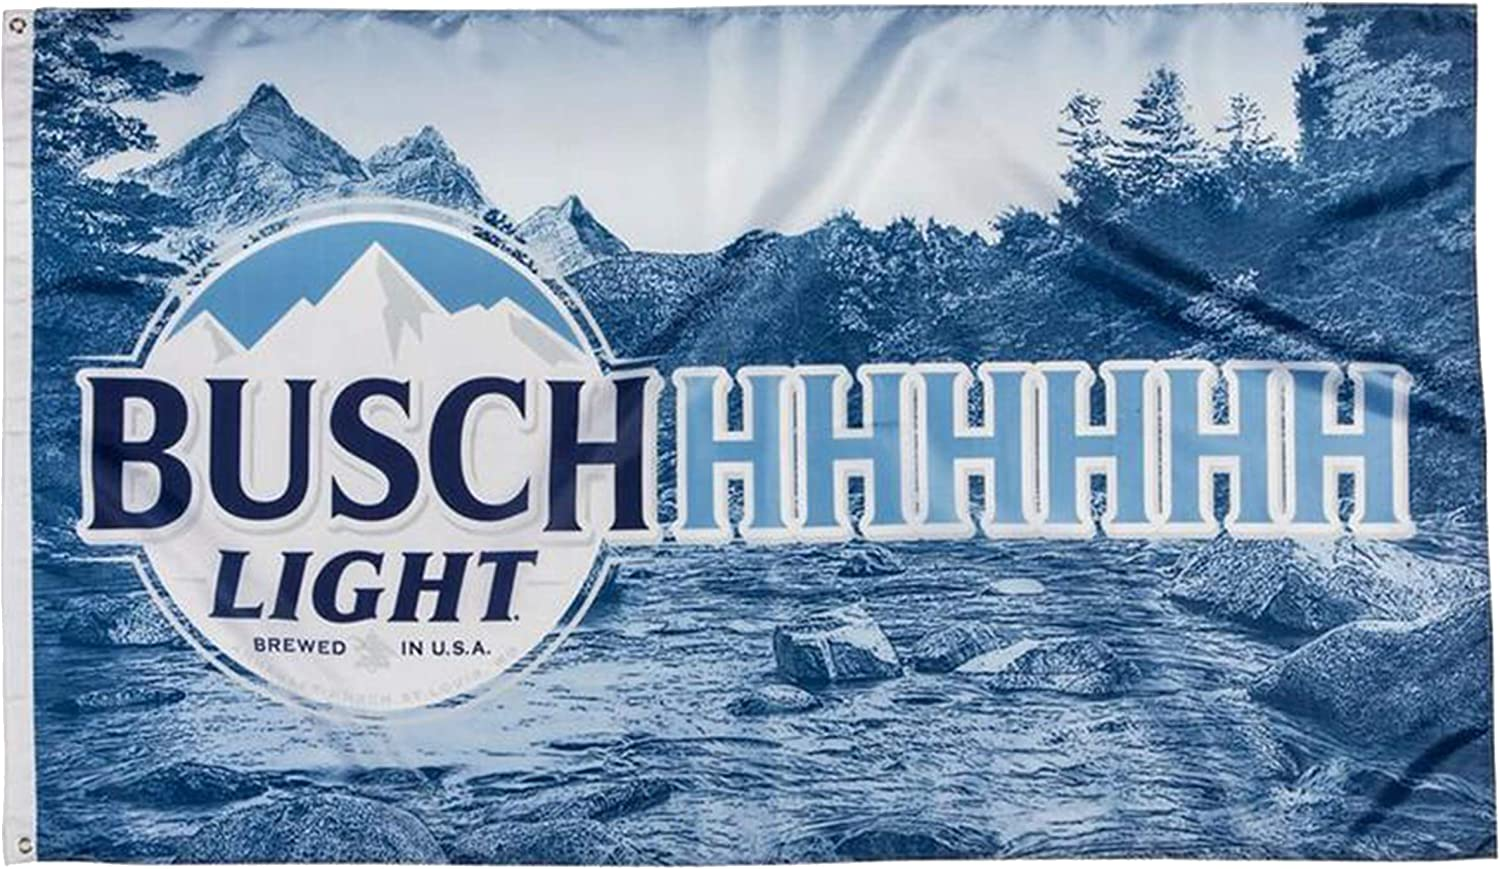 Buschhhhhhh Light Beer Flag